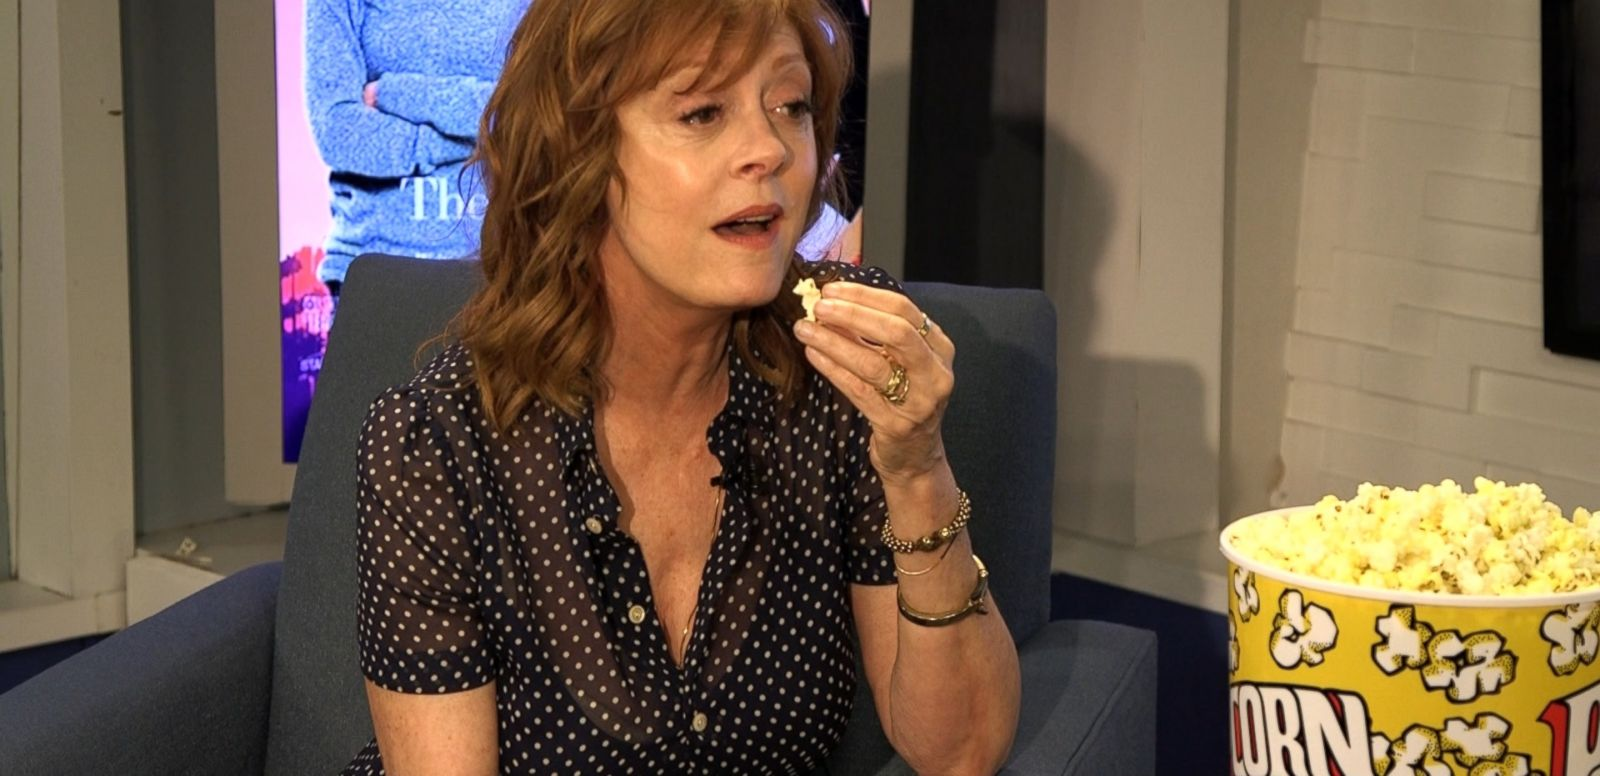 VIDEO: Susan Sarandon's Musical Throwback to 'The Rocky Horror Picture Show'